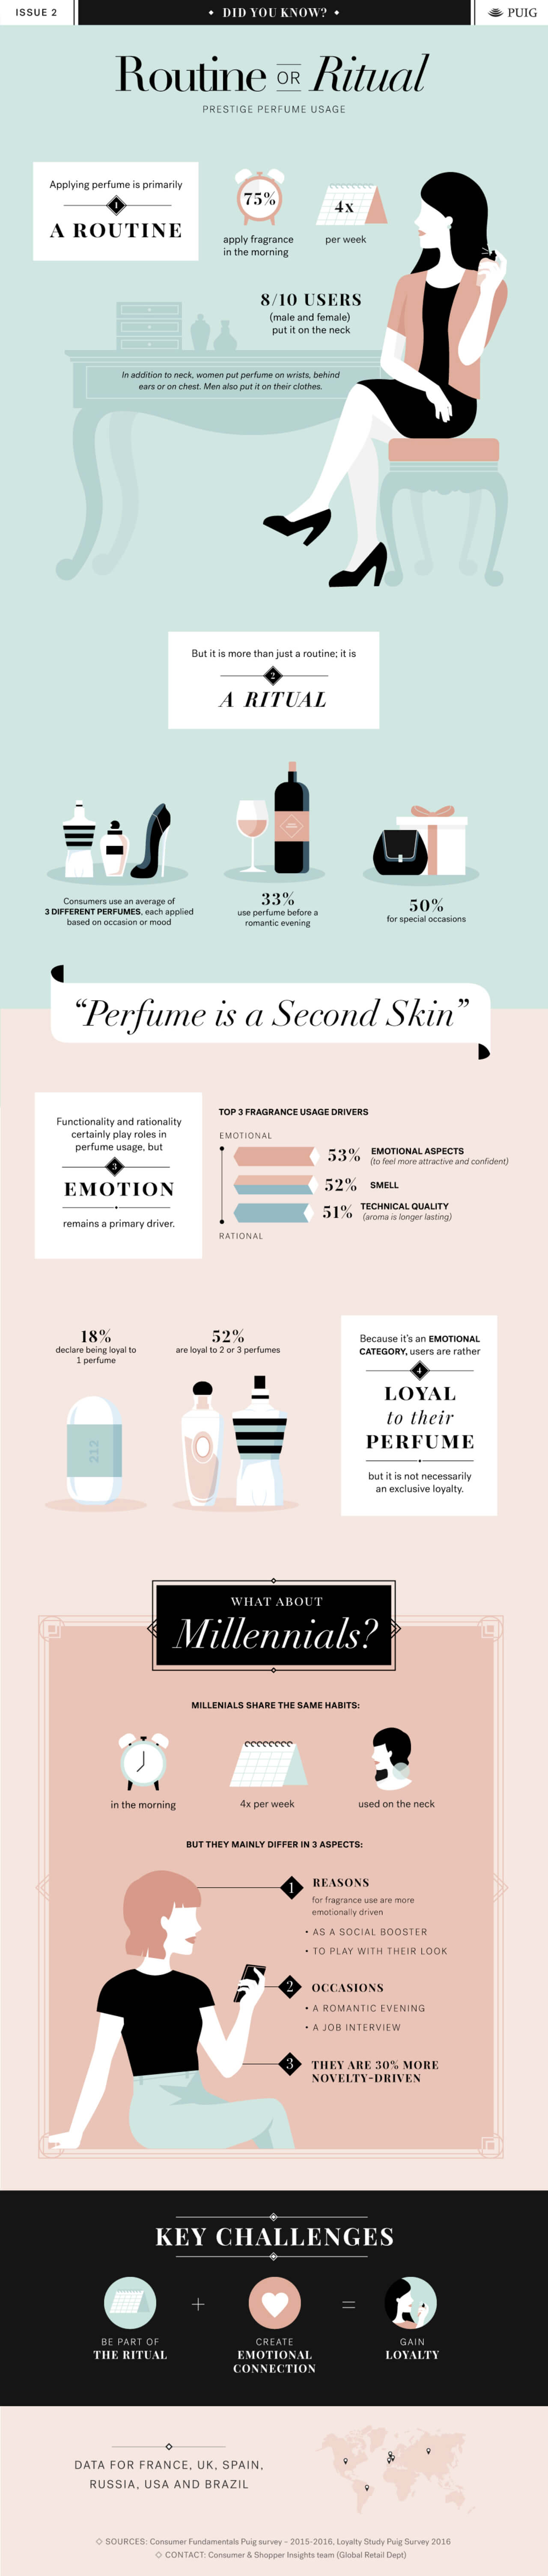 Best Infographics: Prestige Perfume Usage